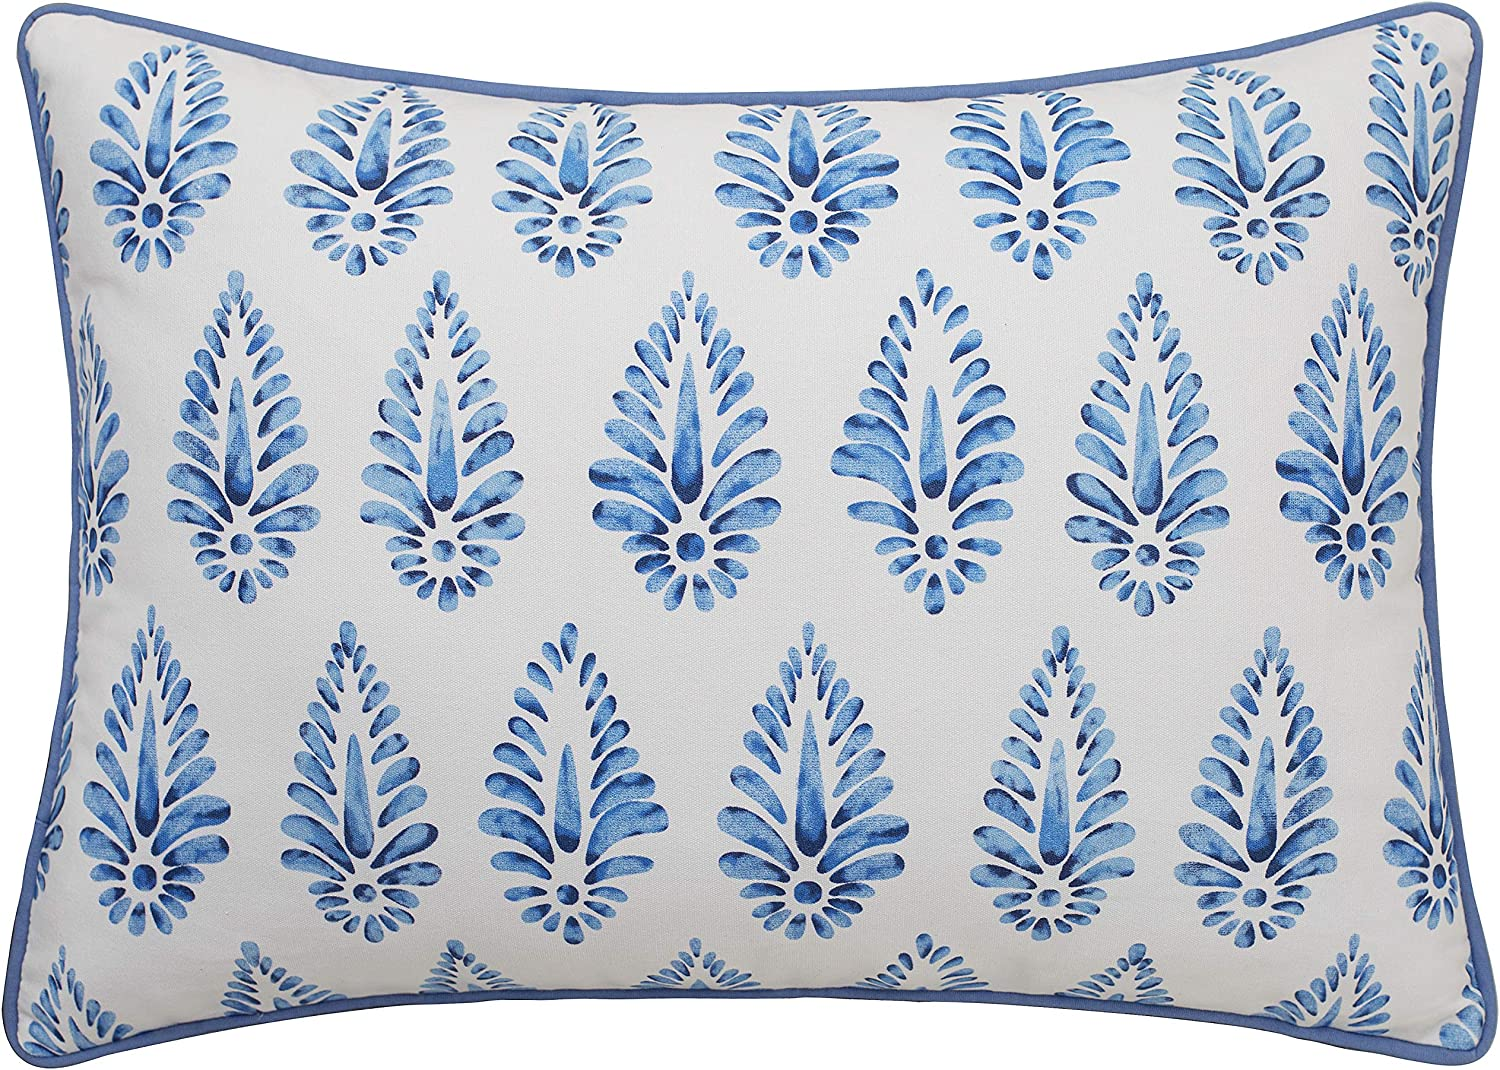 """MANOJAVAYA 14""""X20"""" Block Navy Blue Print Cotton Decorative Oblong Throw Pillow Cover for Sofa Living Room Guest Couch New Home Decor Chair Bohemian Patio Bedroom Office (14""""X20"""", Booti(Blue))"""